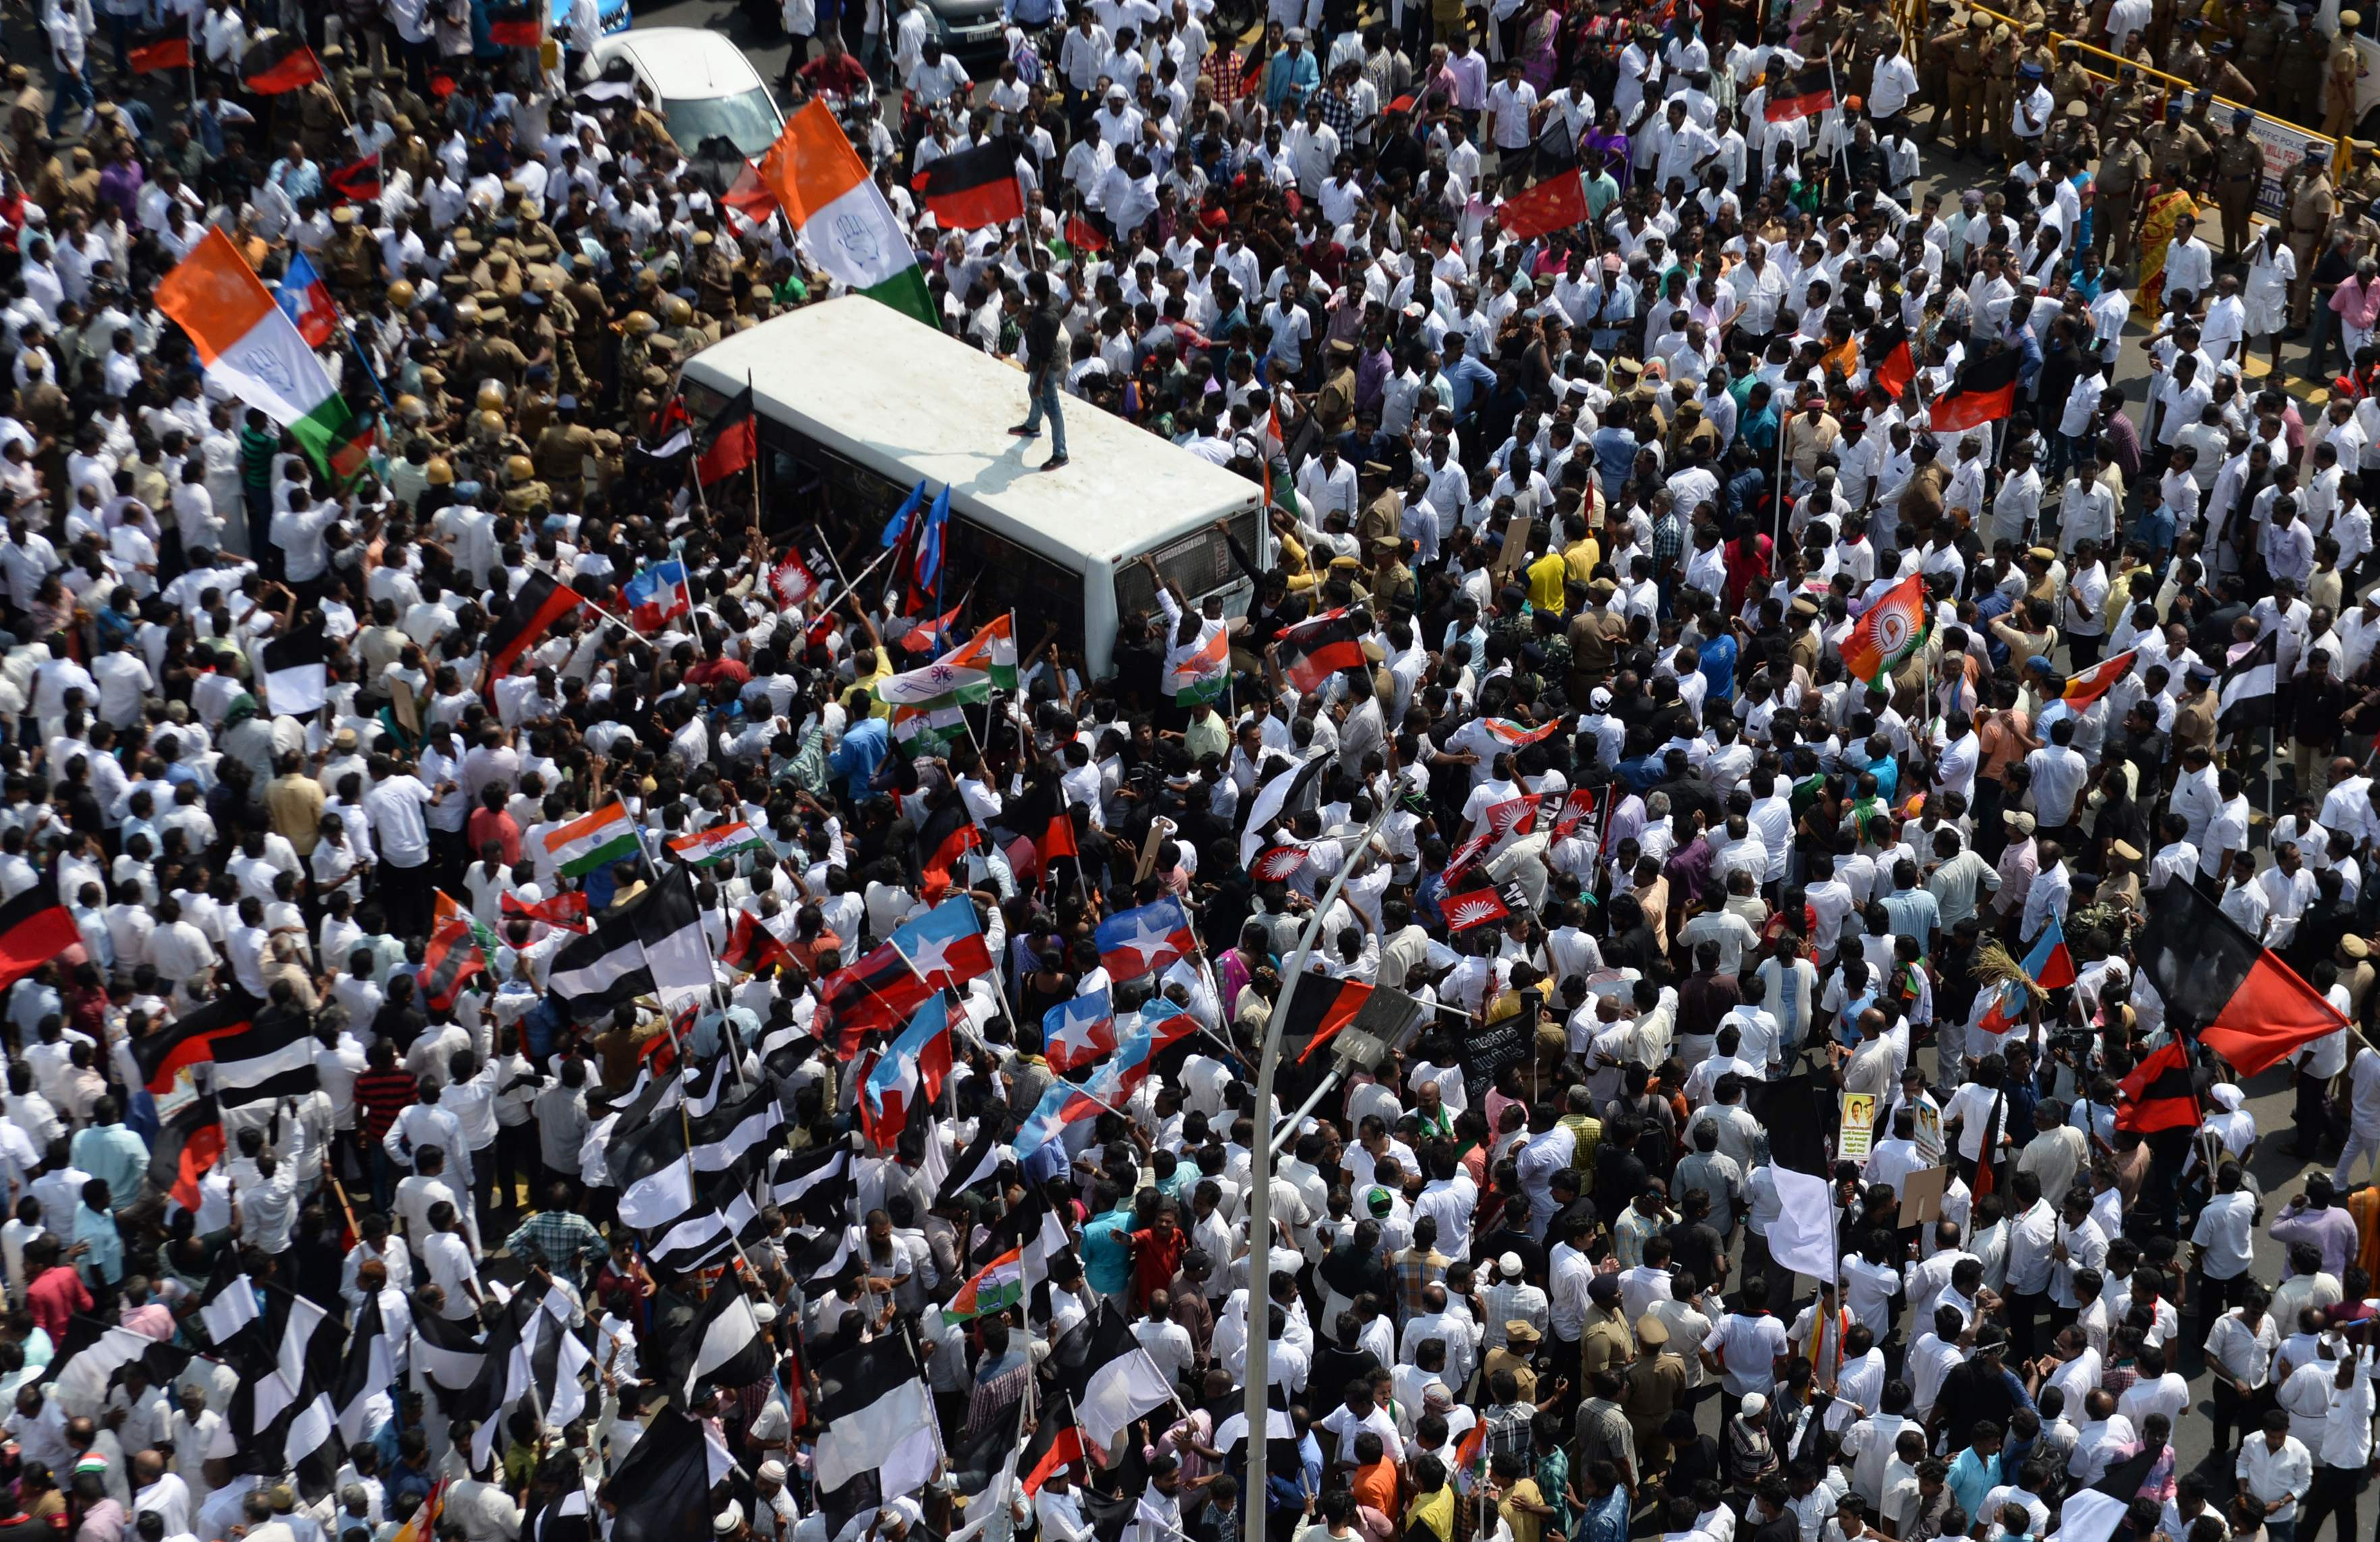 Indian members of the Darvida Munetra Kazhagam political party and opposition groups shout slogans during a protest against the union government against the union government over a delay in the implementation of a water management board in Chennai on